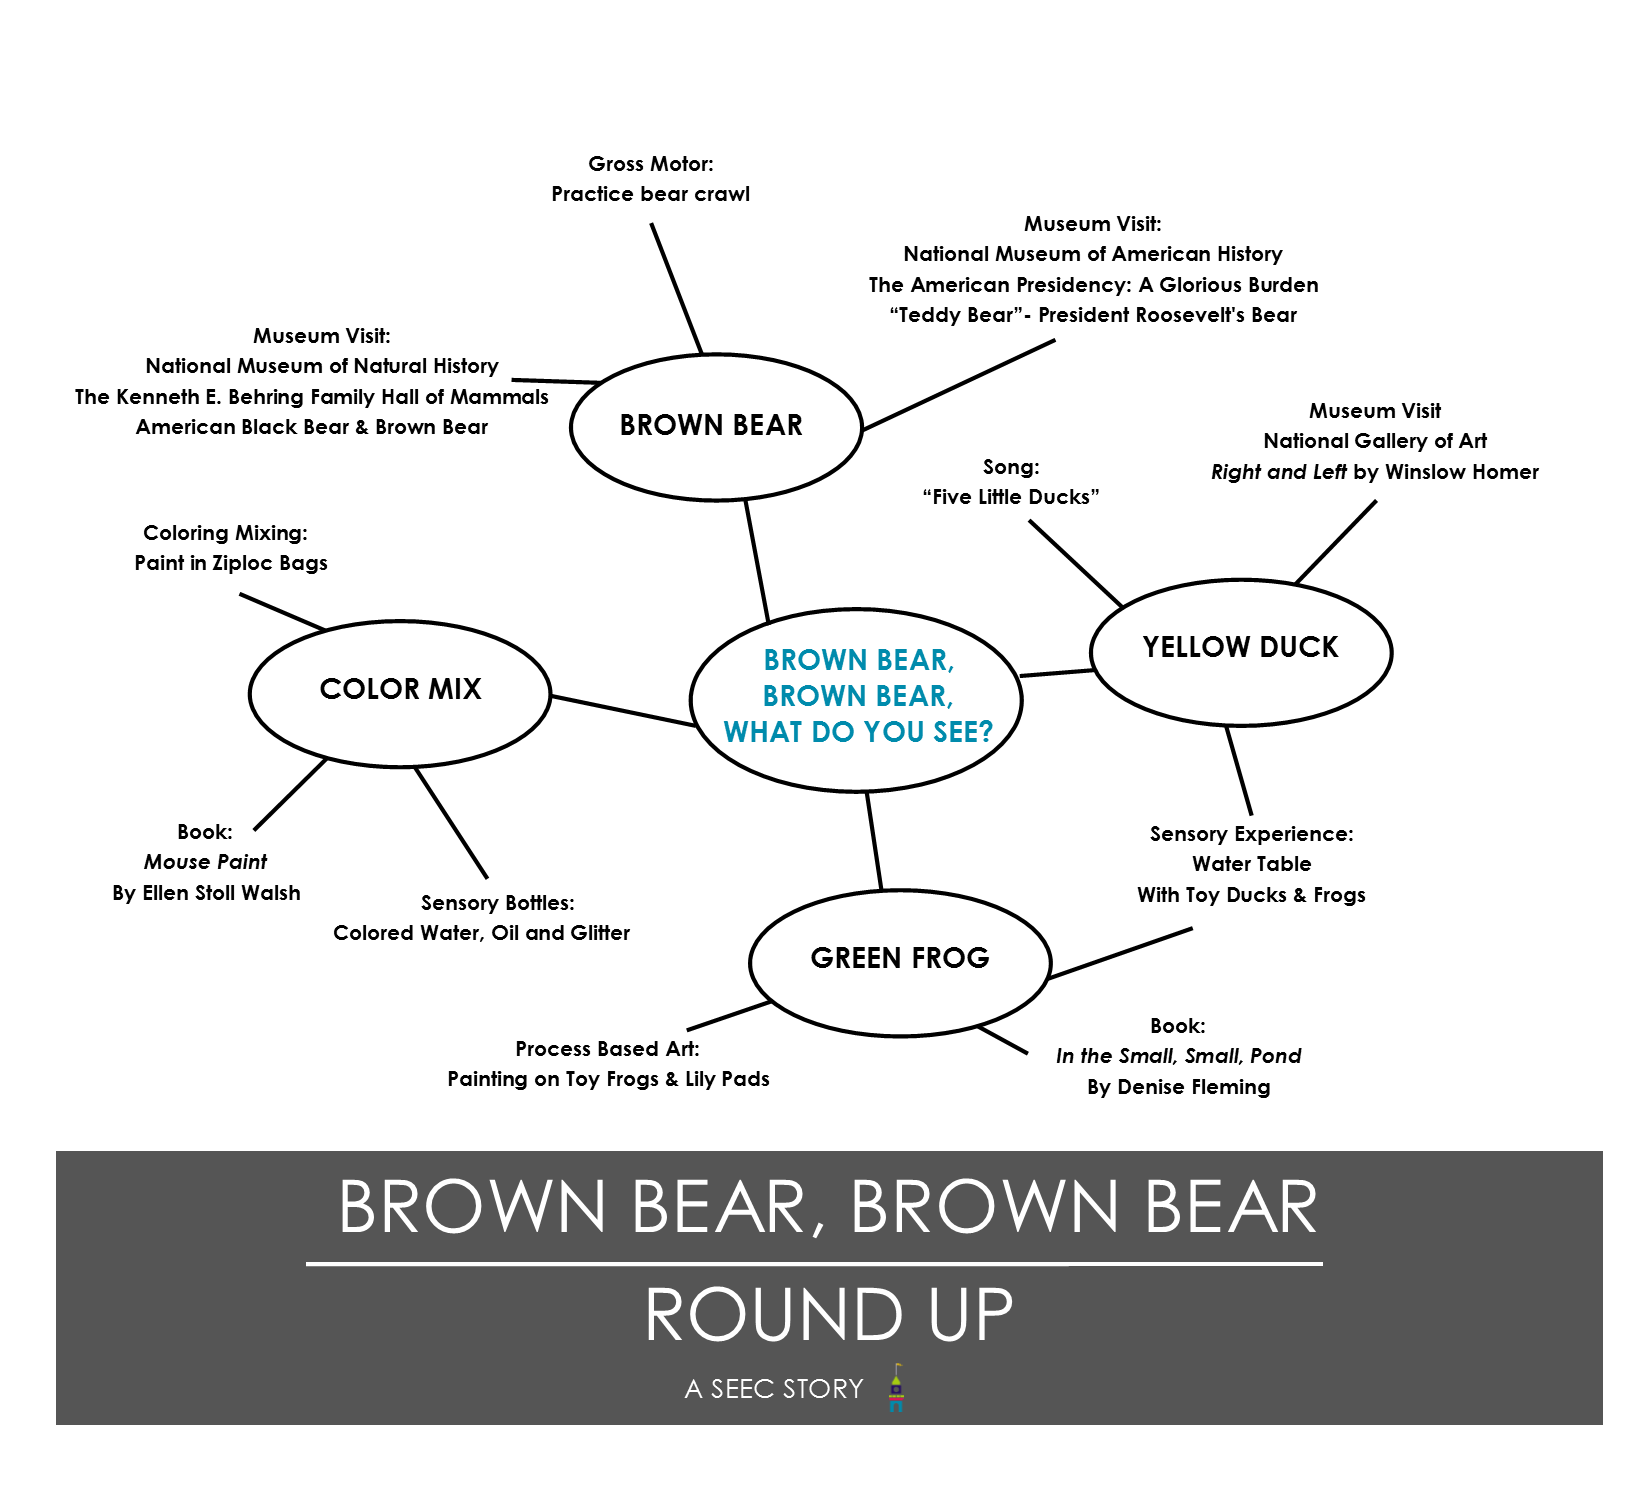 photograph relating to Brown Bear Brown Bear What Do You See Printable Book known as Brown Undertake, Brown Go through Roundup SEEC